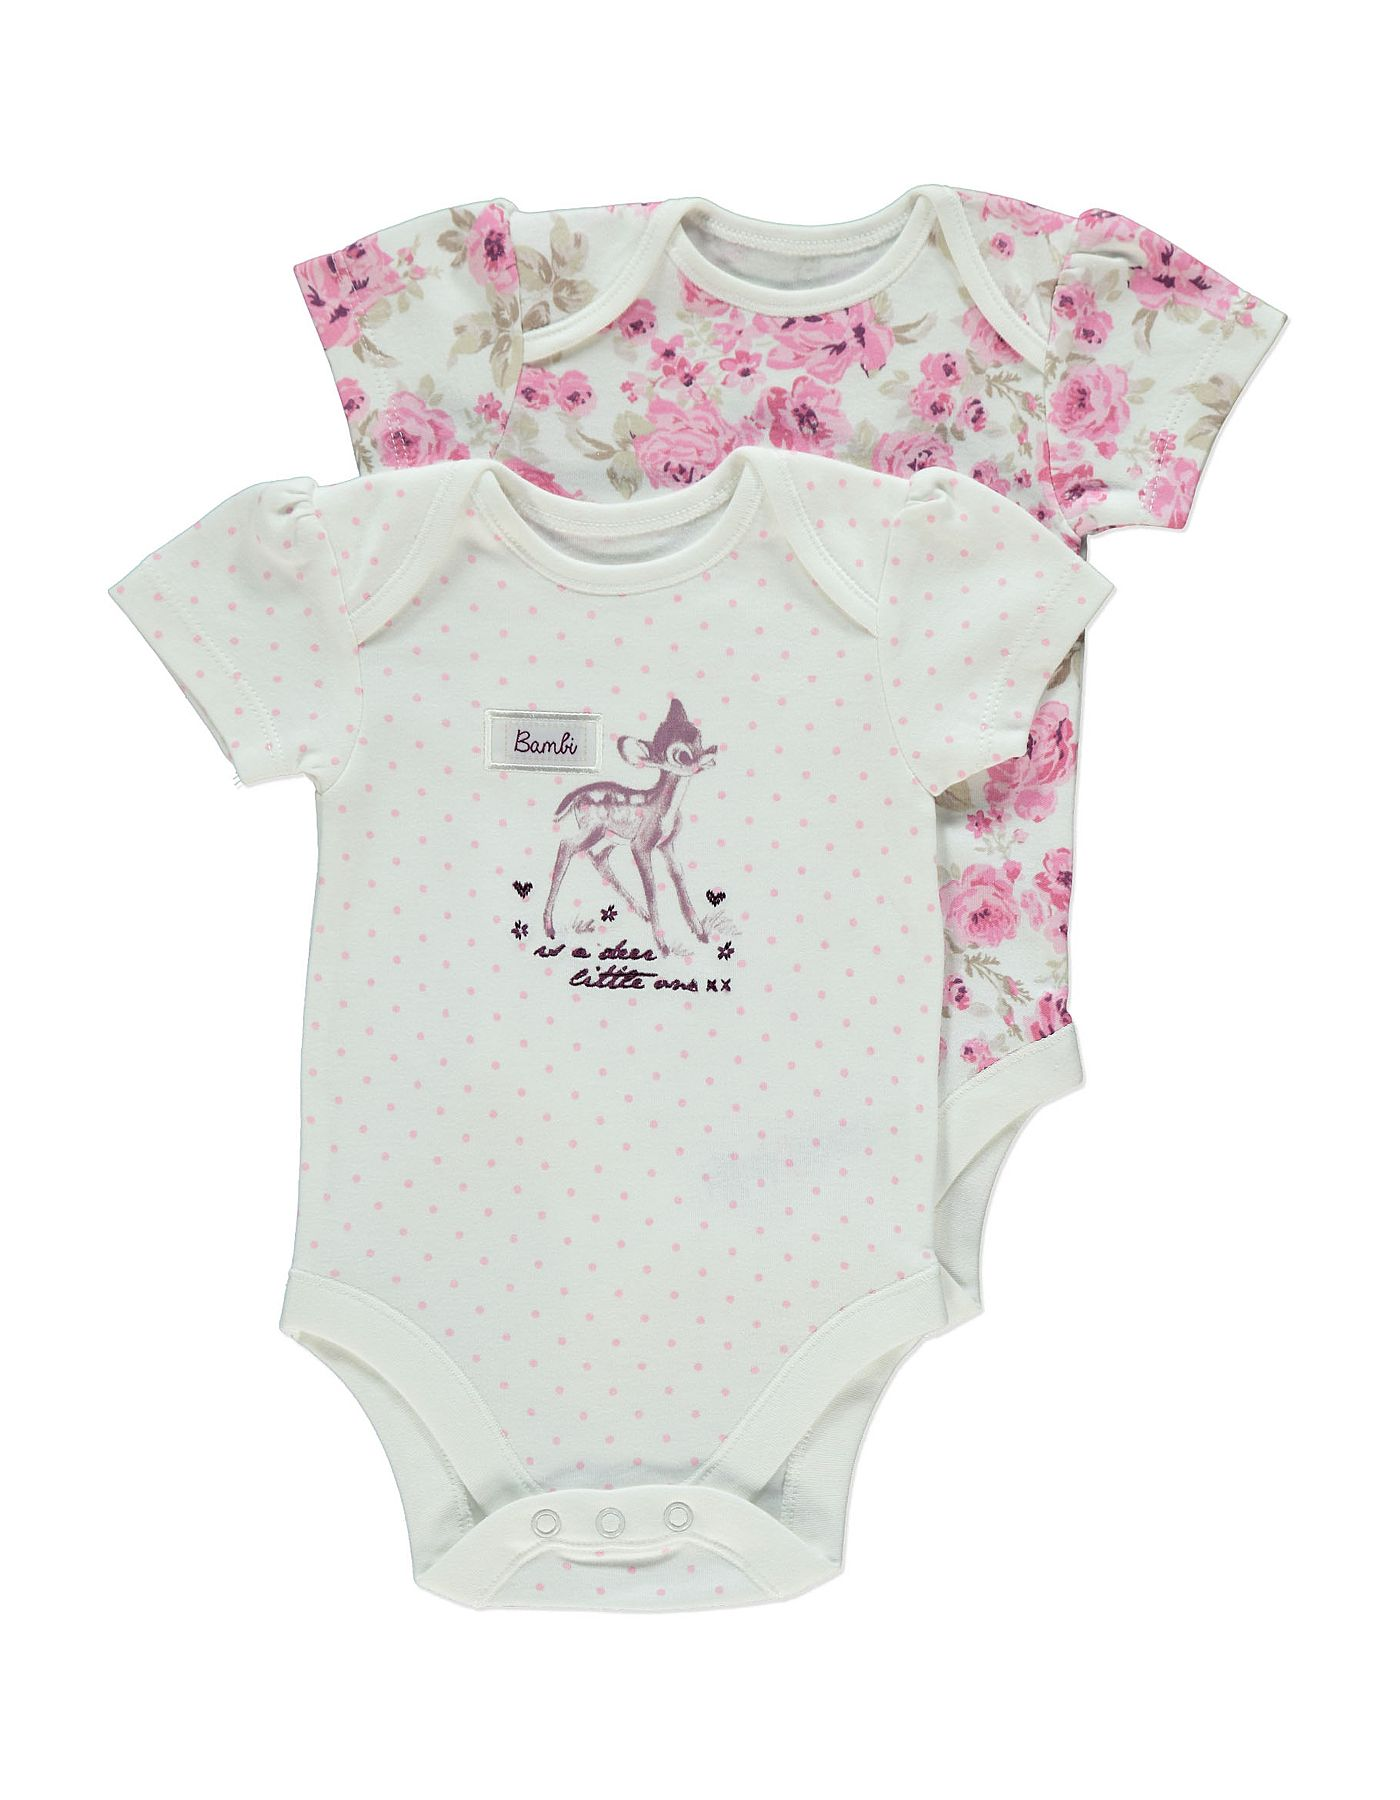 a36cc7ee369 2 Pack Bambi Bodysuits